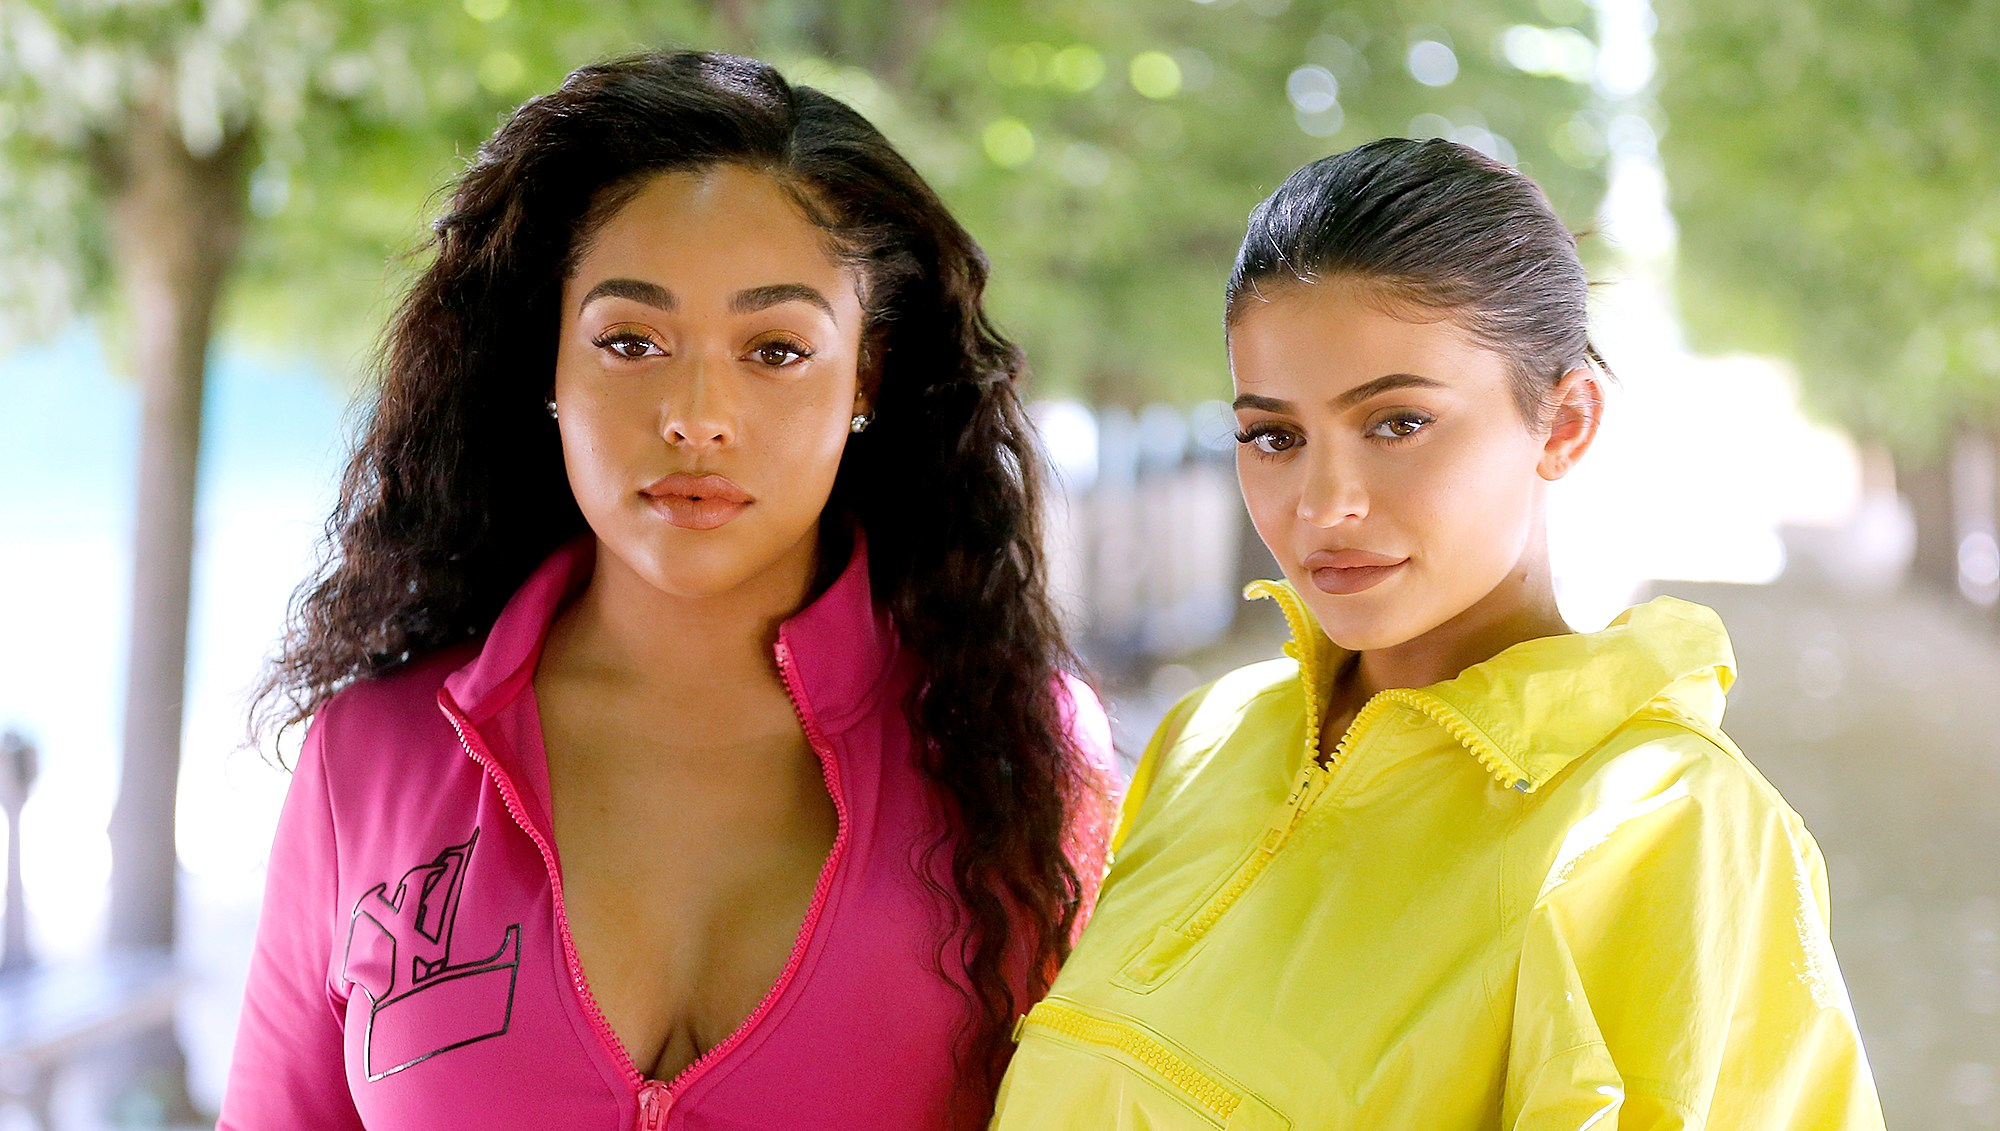 Kylie-Jenner-Find-Out-About-Jordyn-Woods